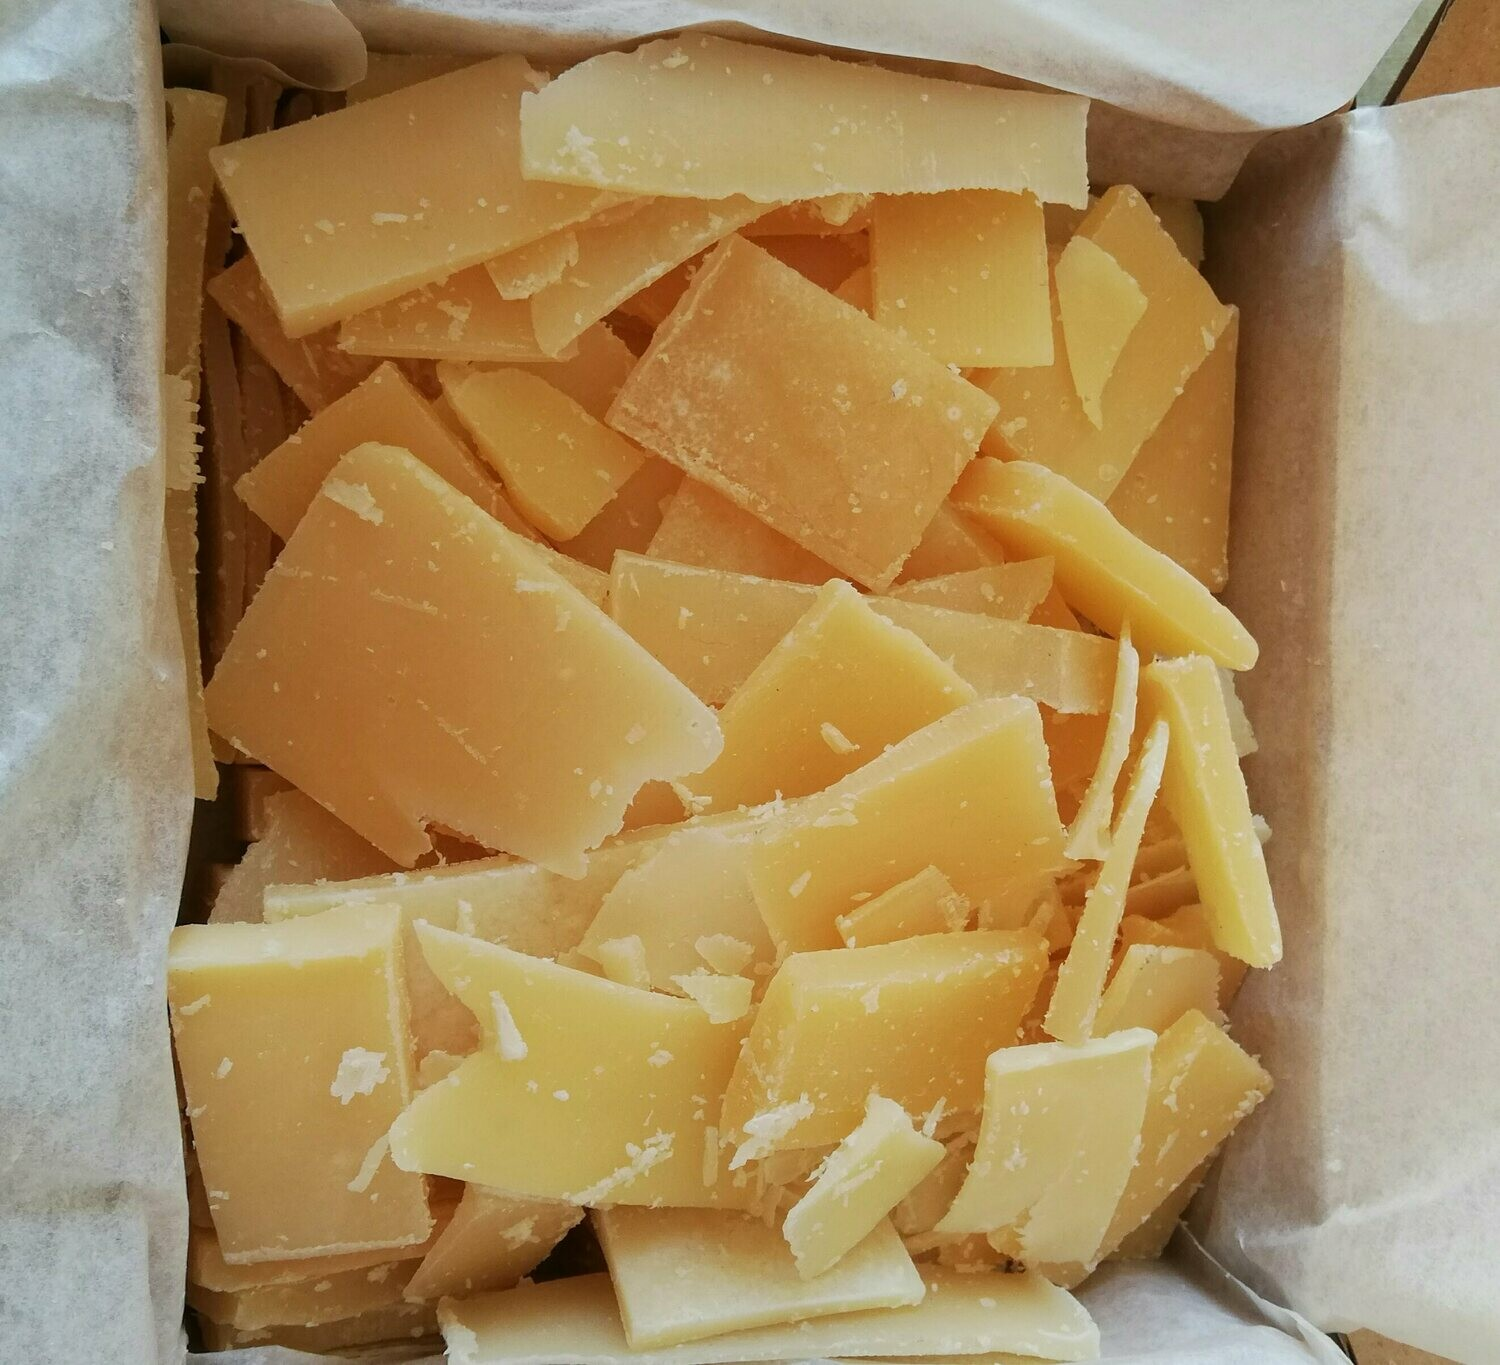 Shampoo bar offcuts and trimmings